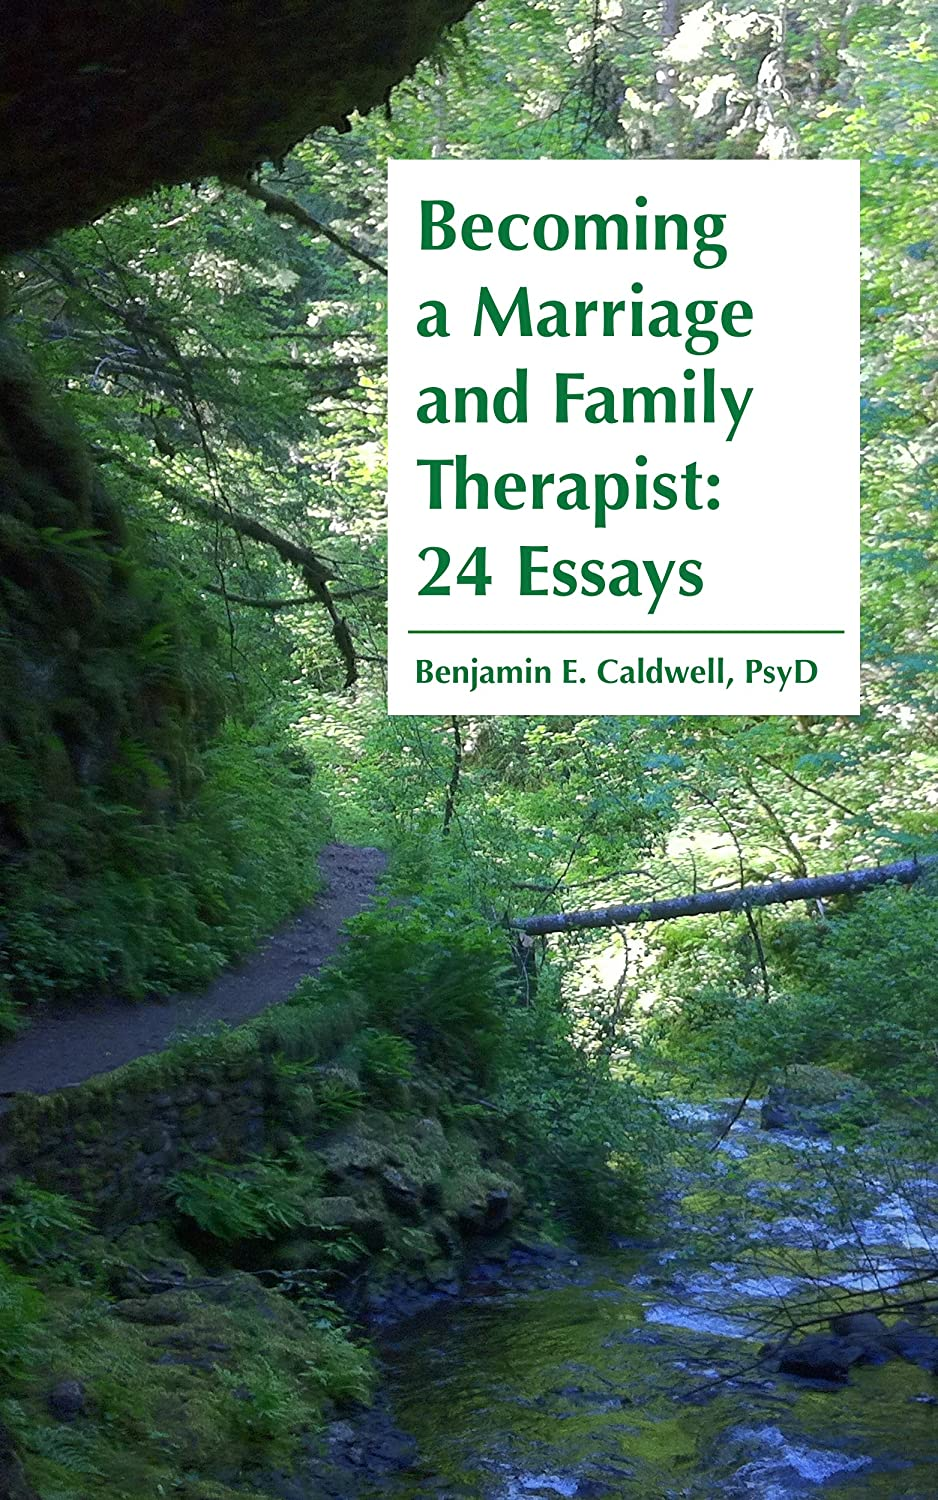 Becoming a Marriage and Family Therapist: 24 Essays by Benjamin E. Caldwell, PsyD